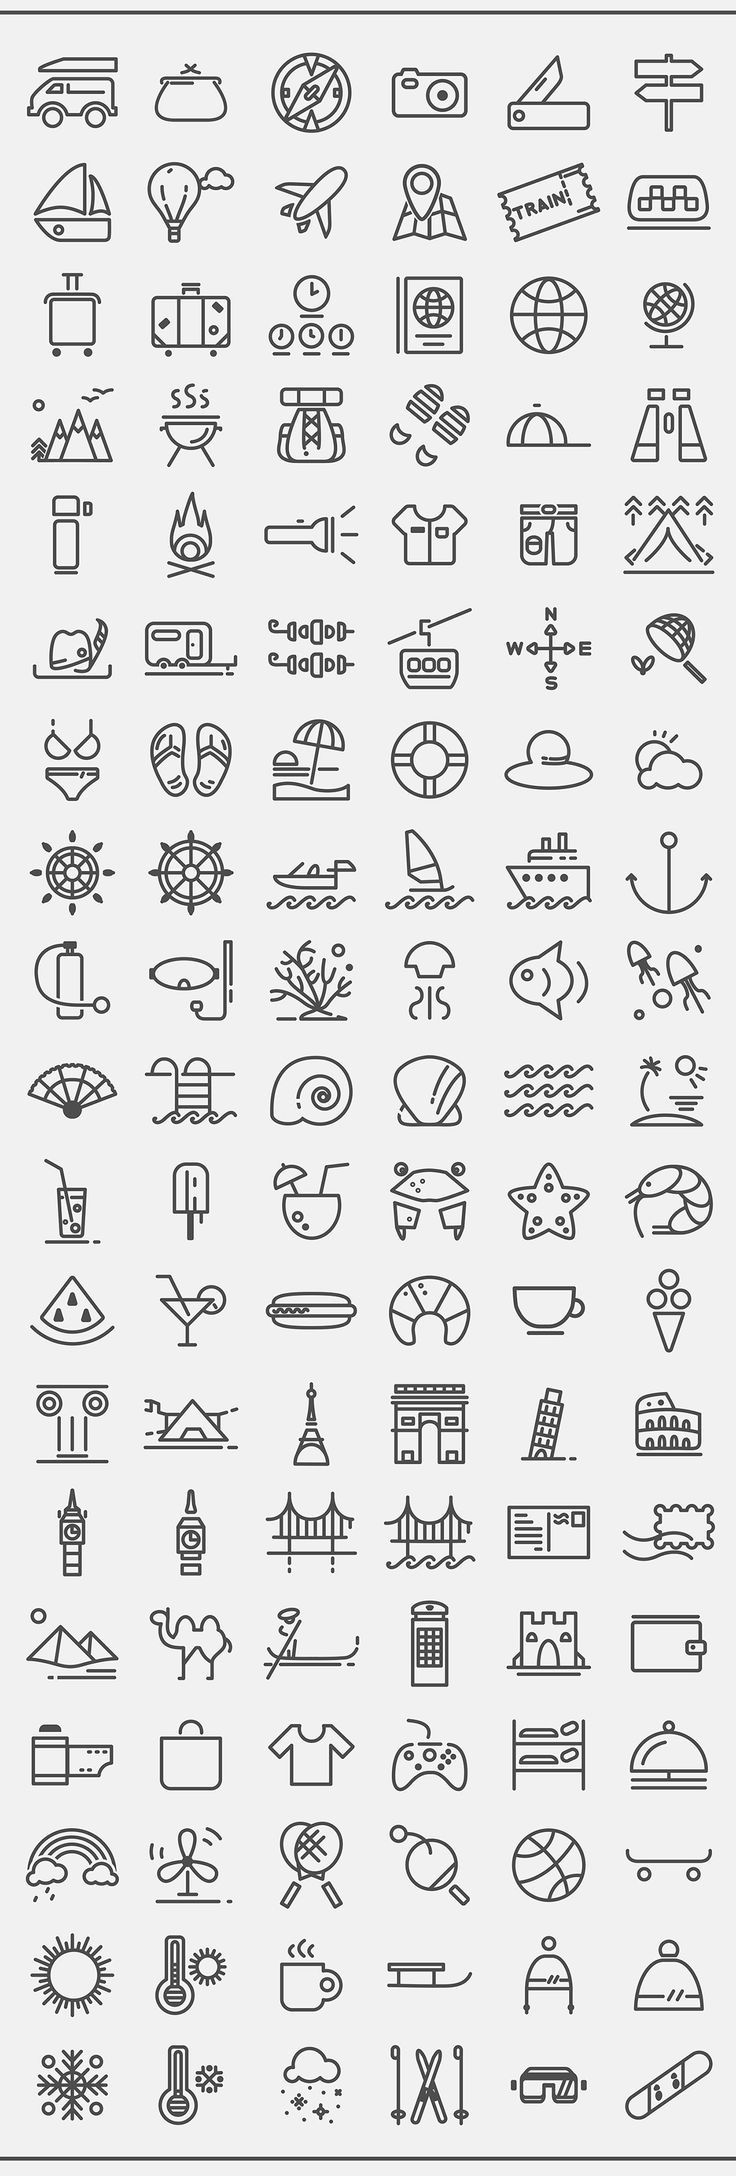 Free Travelling icon set on Behance: